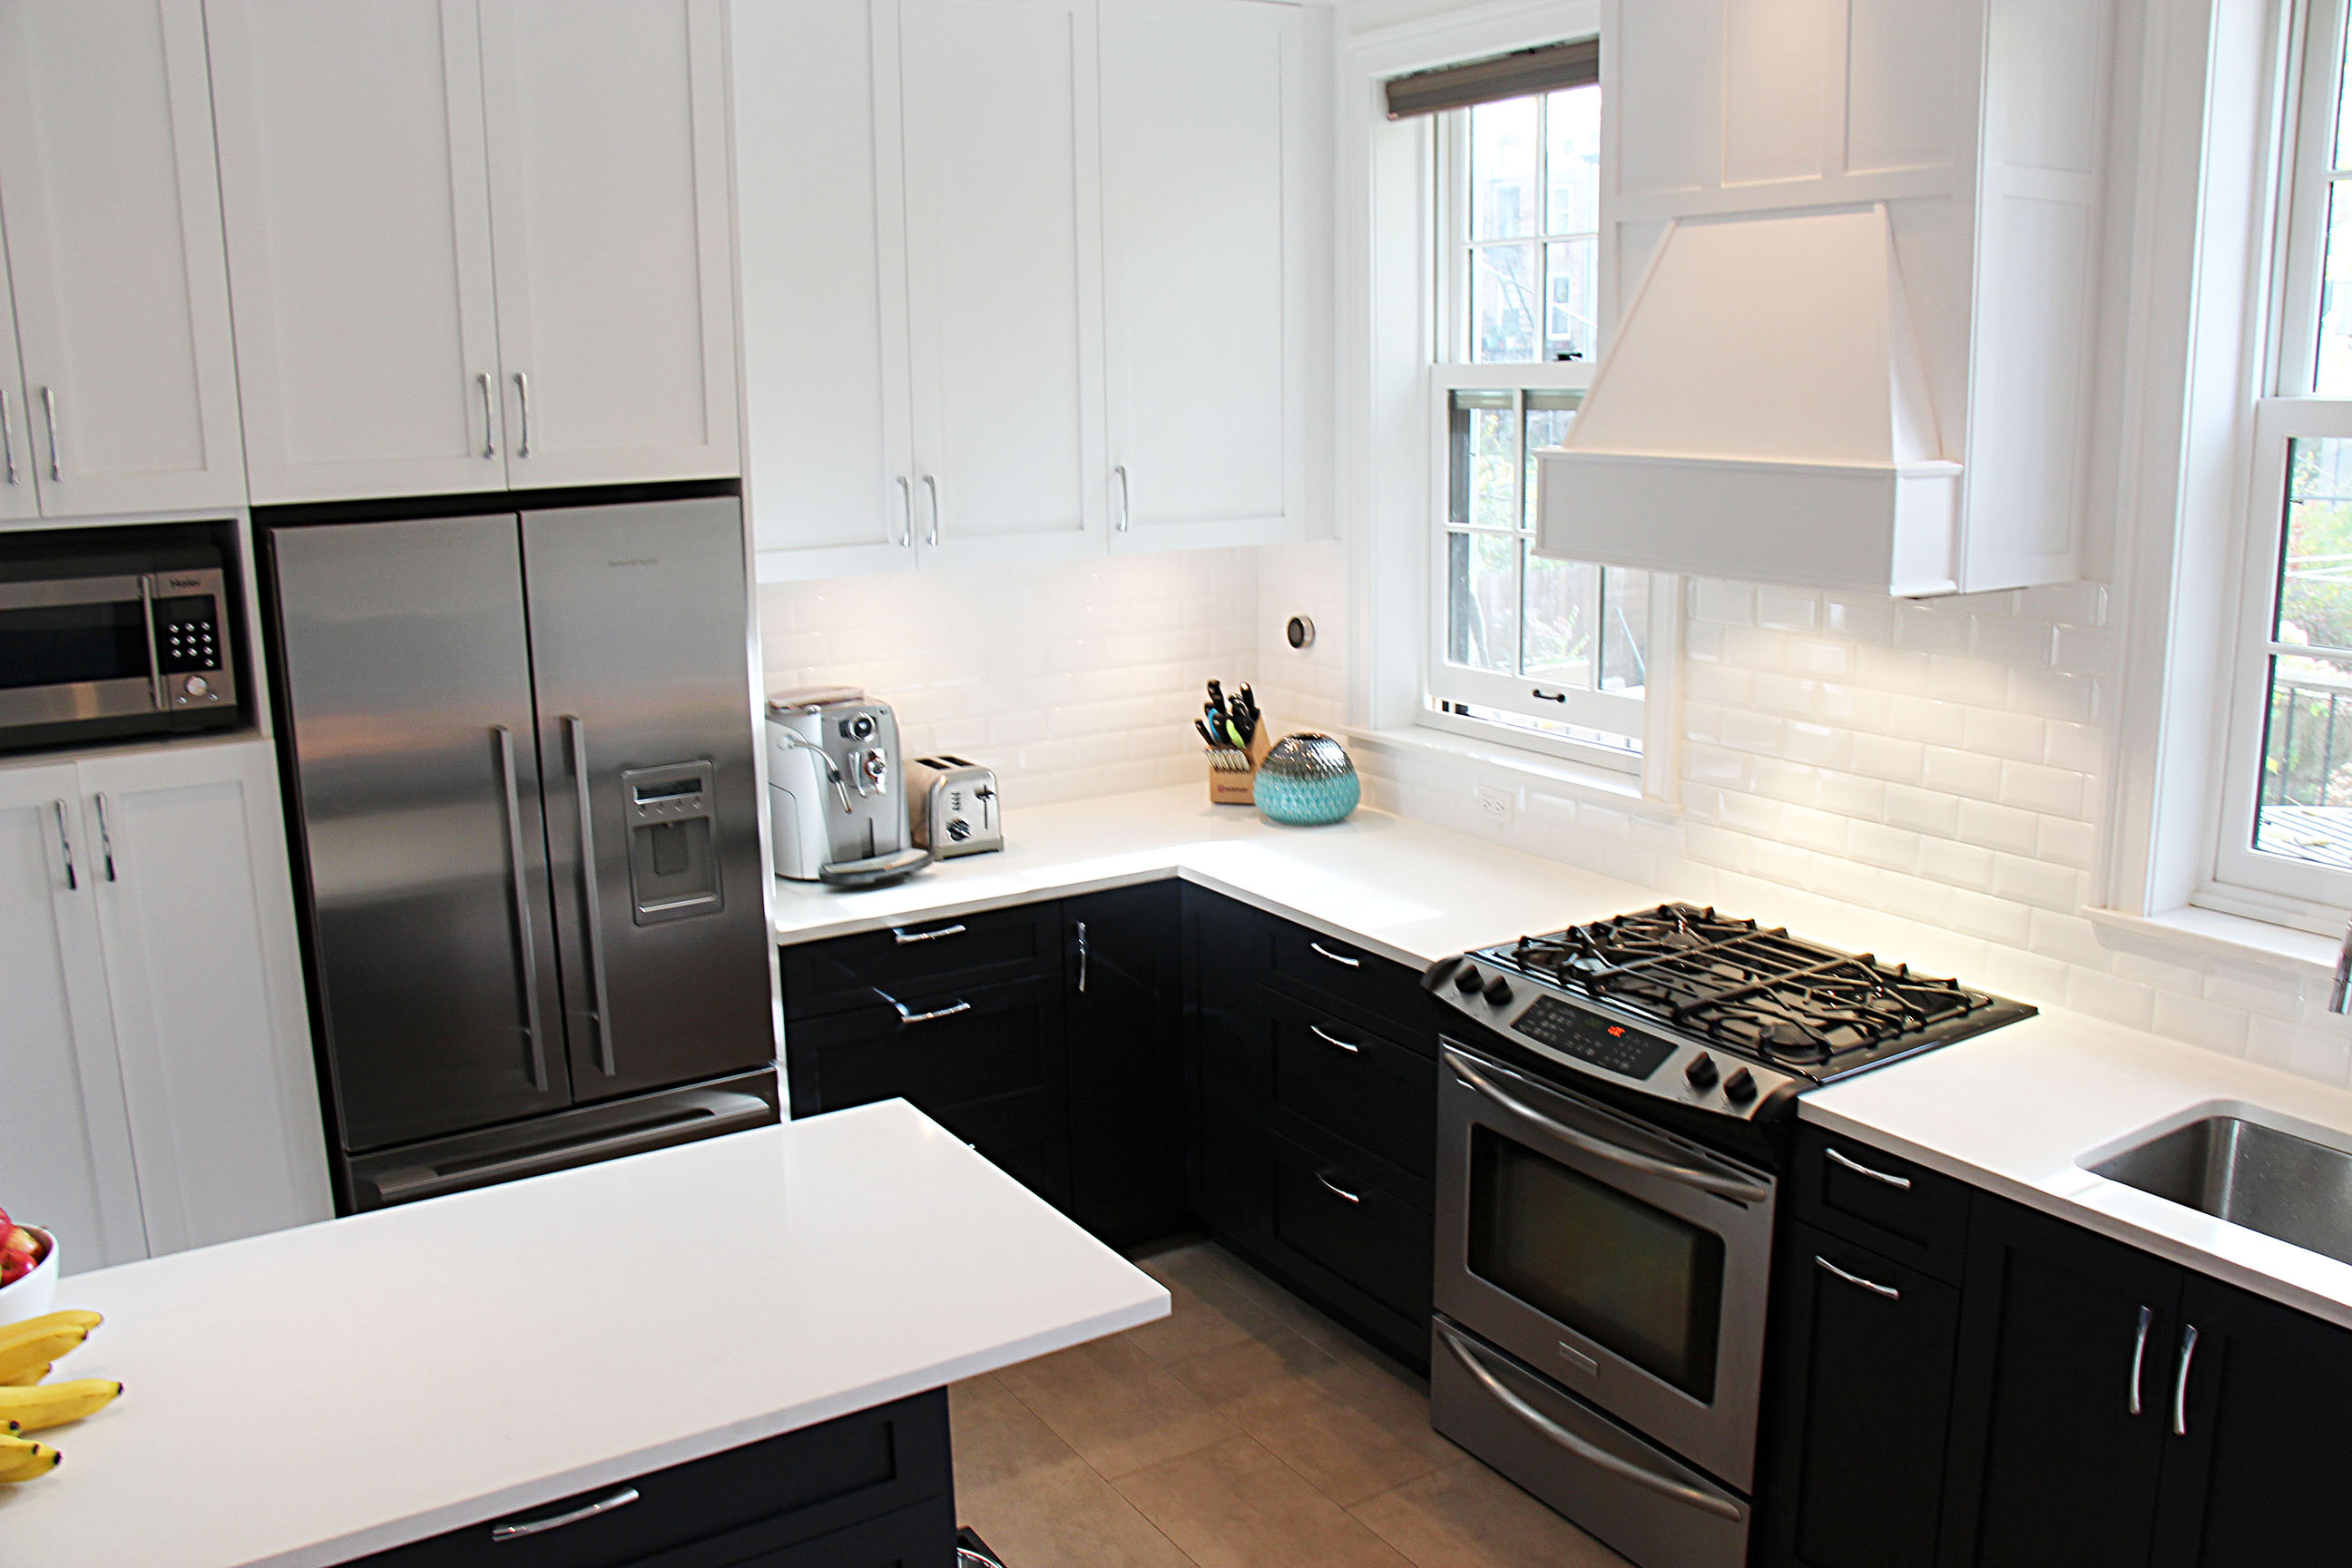 full dishwasher stores of are appliance employee kitchen service series size appliances small stunning drawer store single bosch retail where discount made jordan